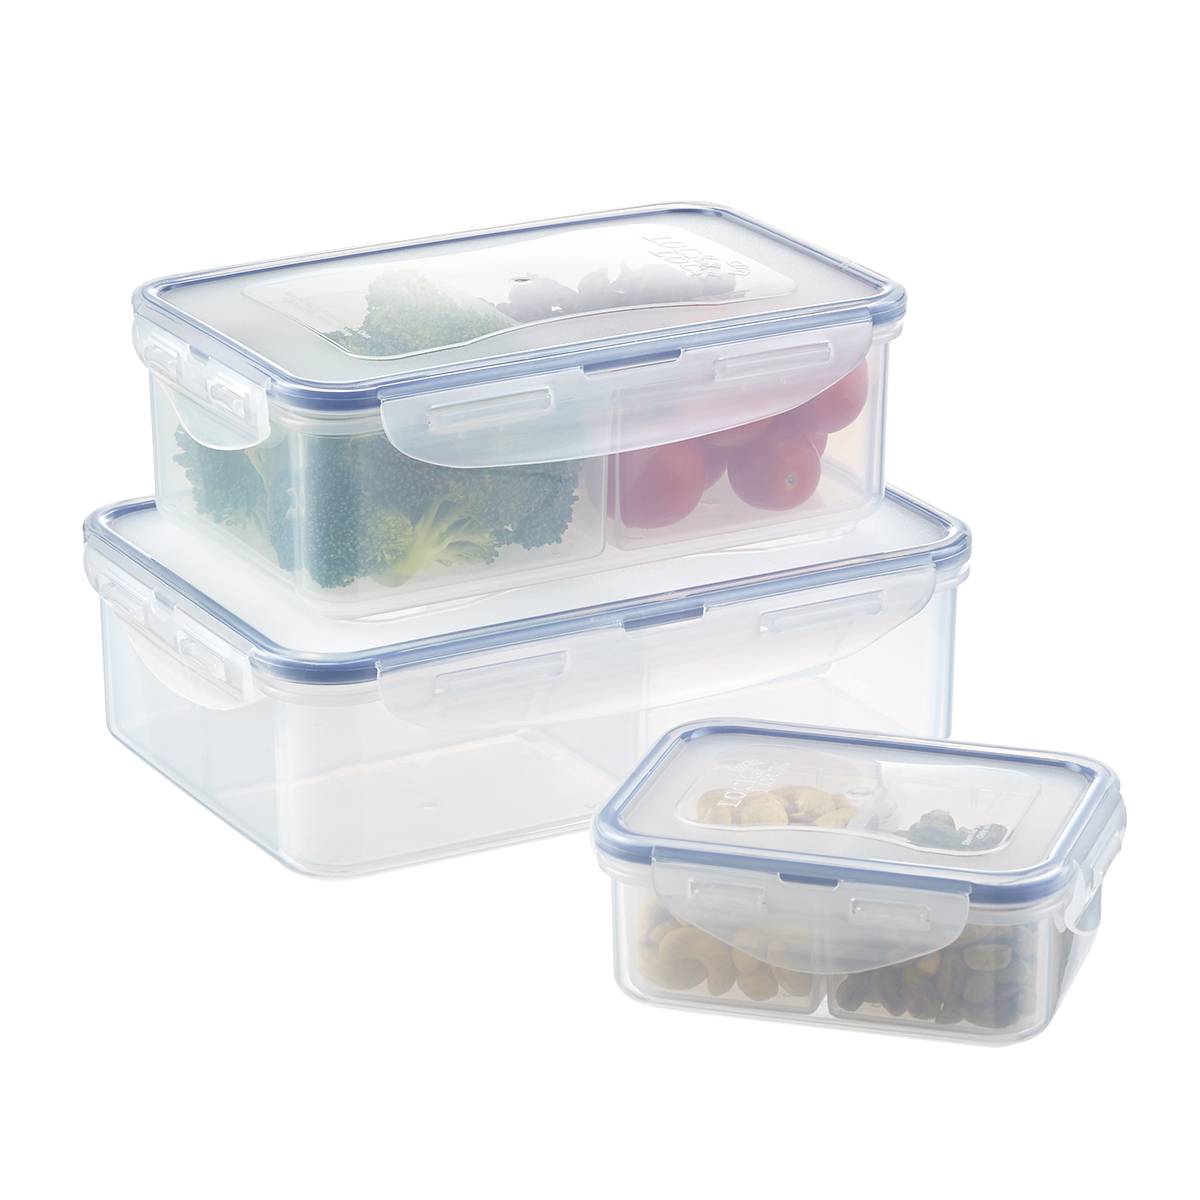 Lock & Lock Divided Food Storage